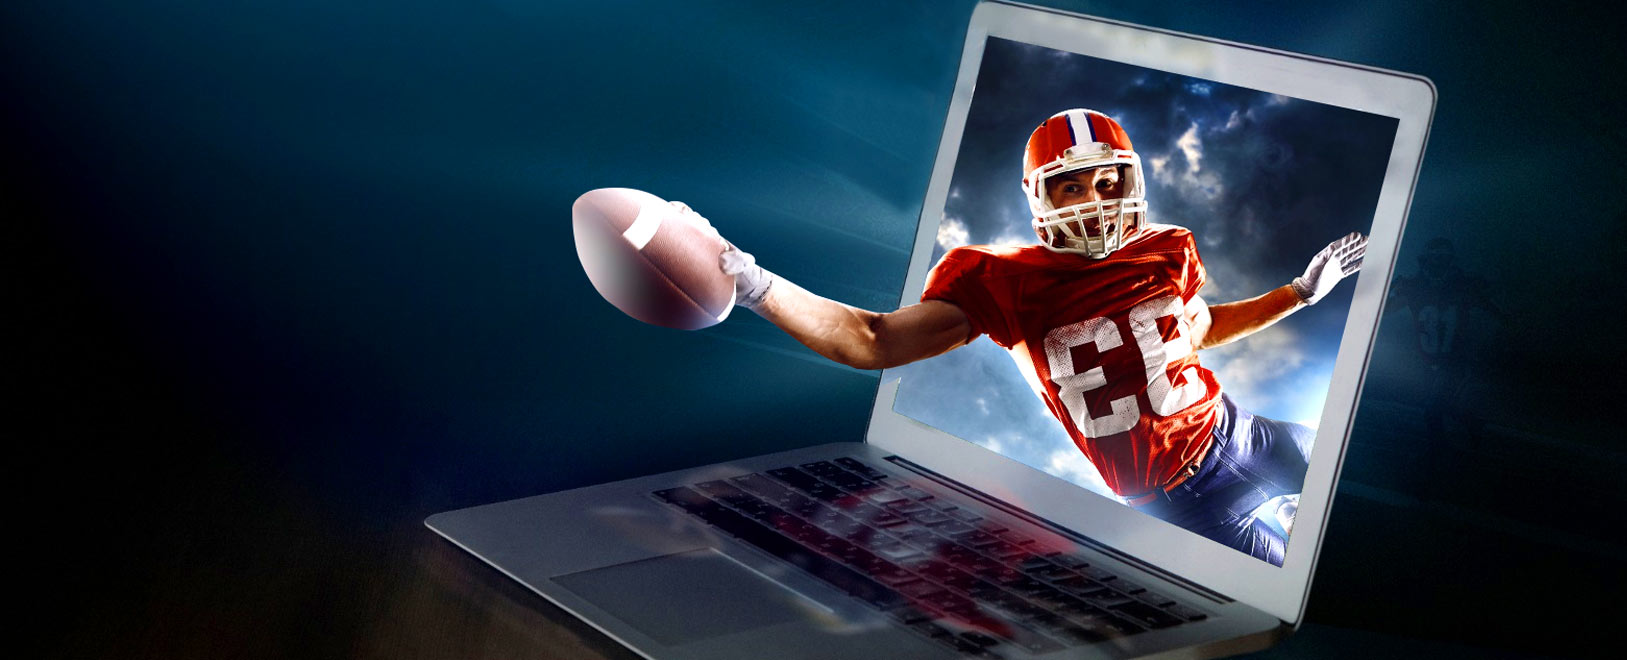 Bet on these Virtual Sports during the Super Bowl!